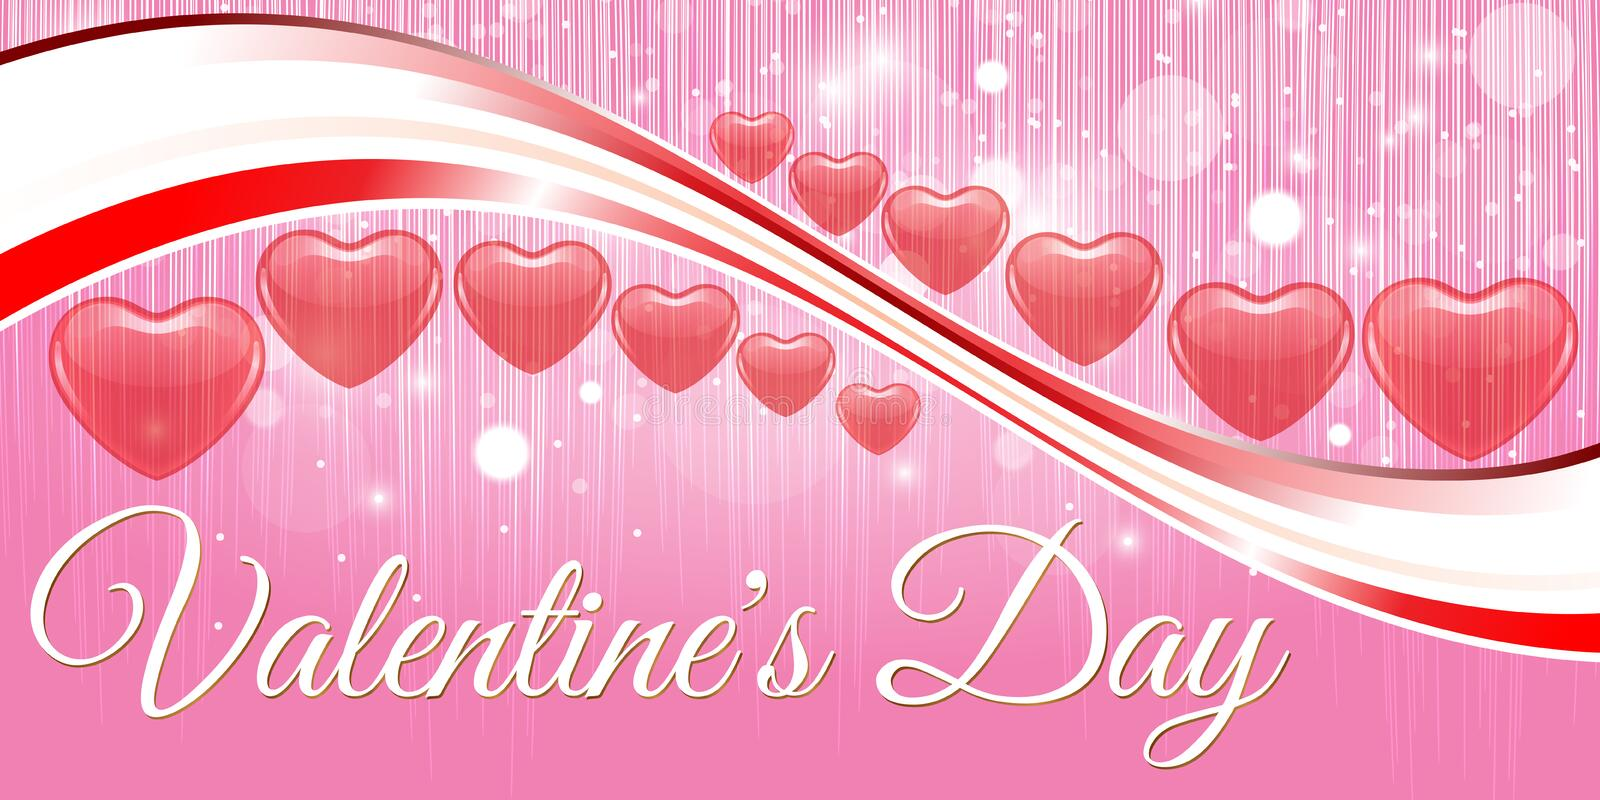 Creative red heart banner valentine day royalty free stock photo